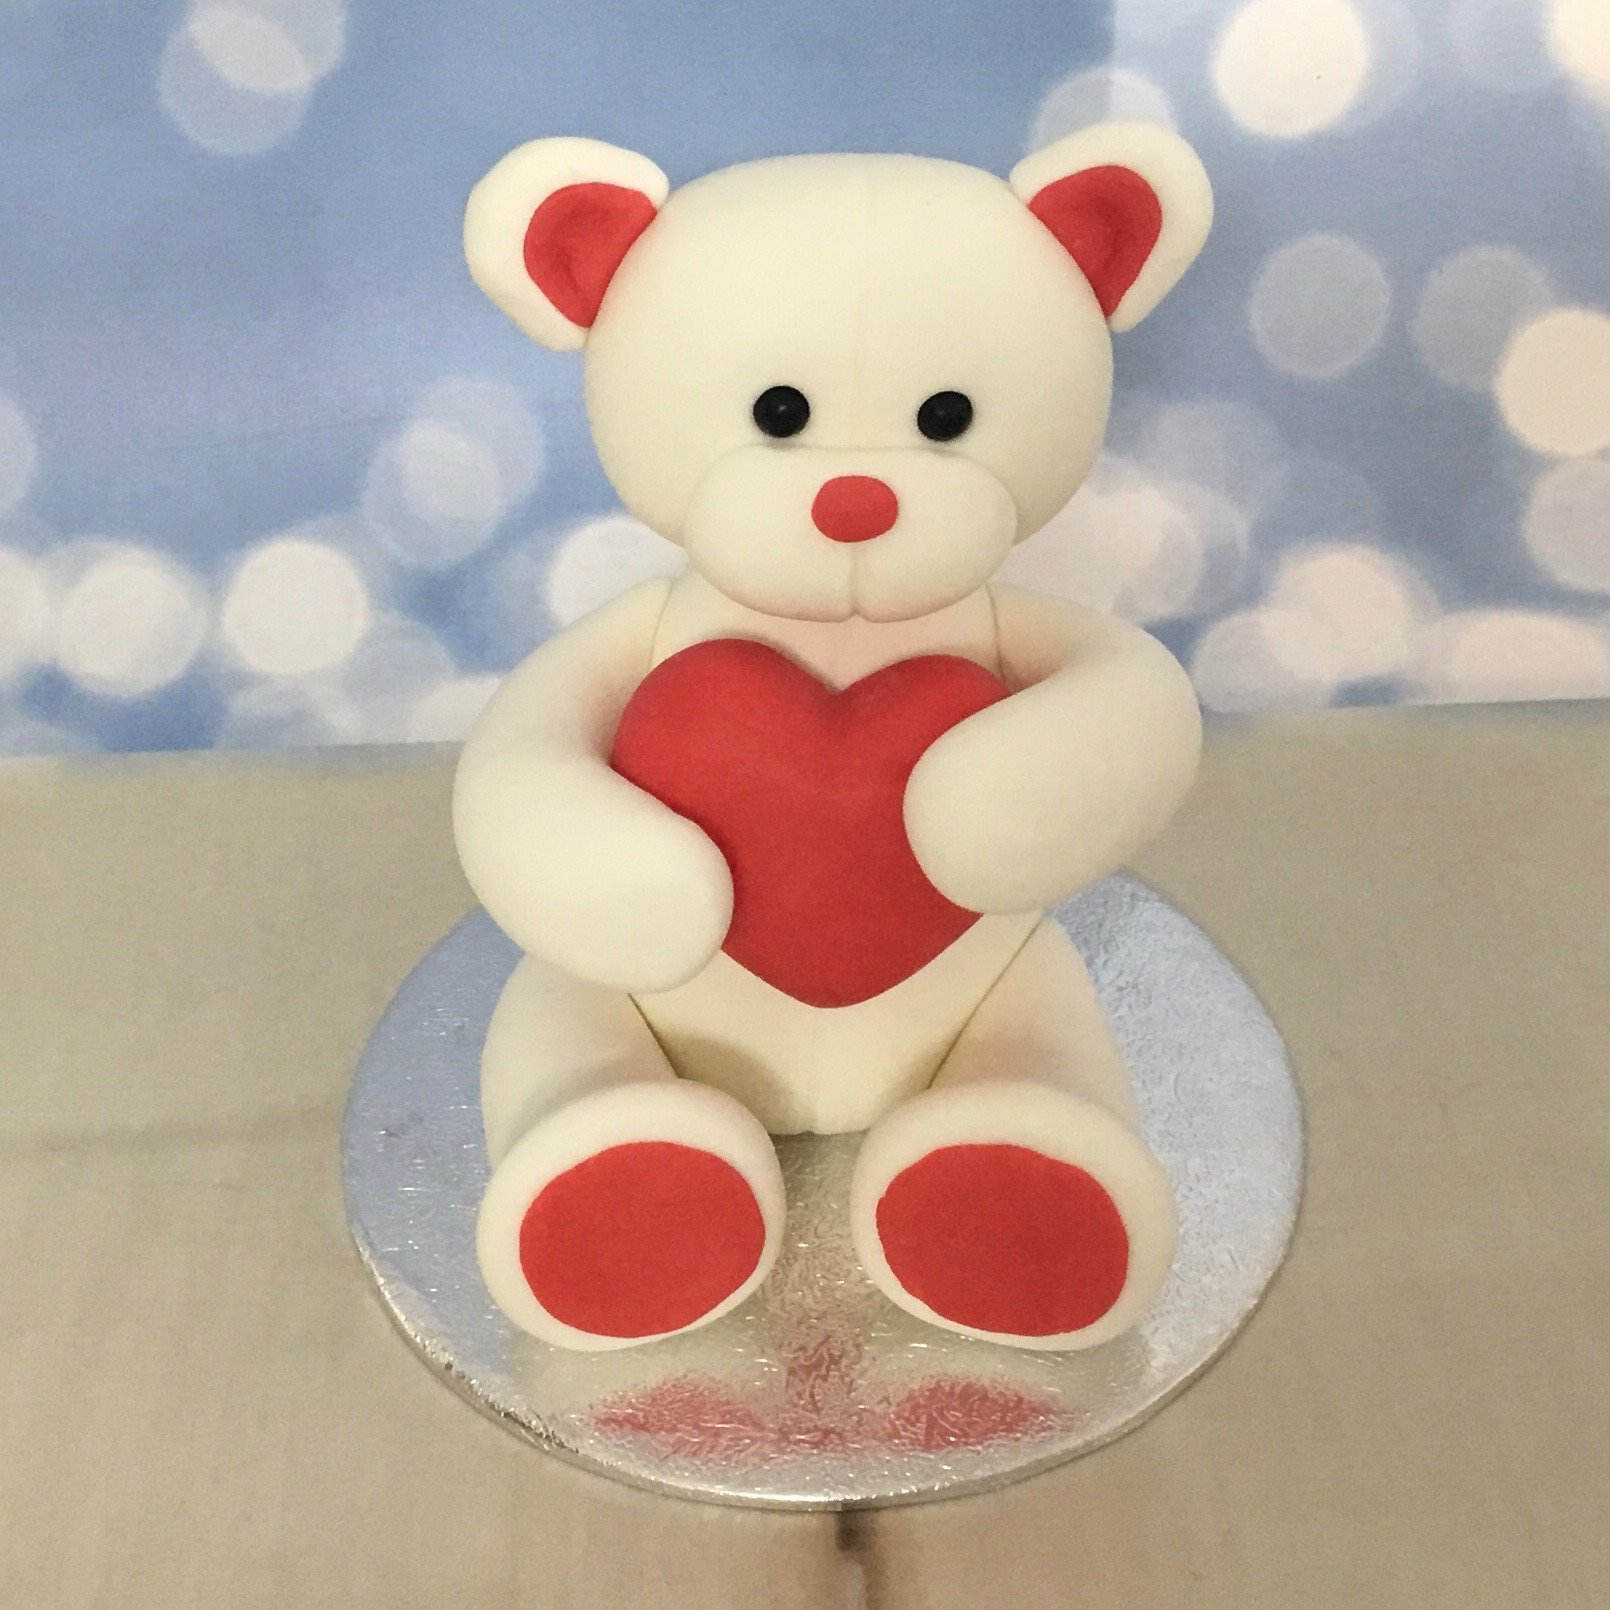 Teddy bear model kit £10